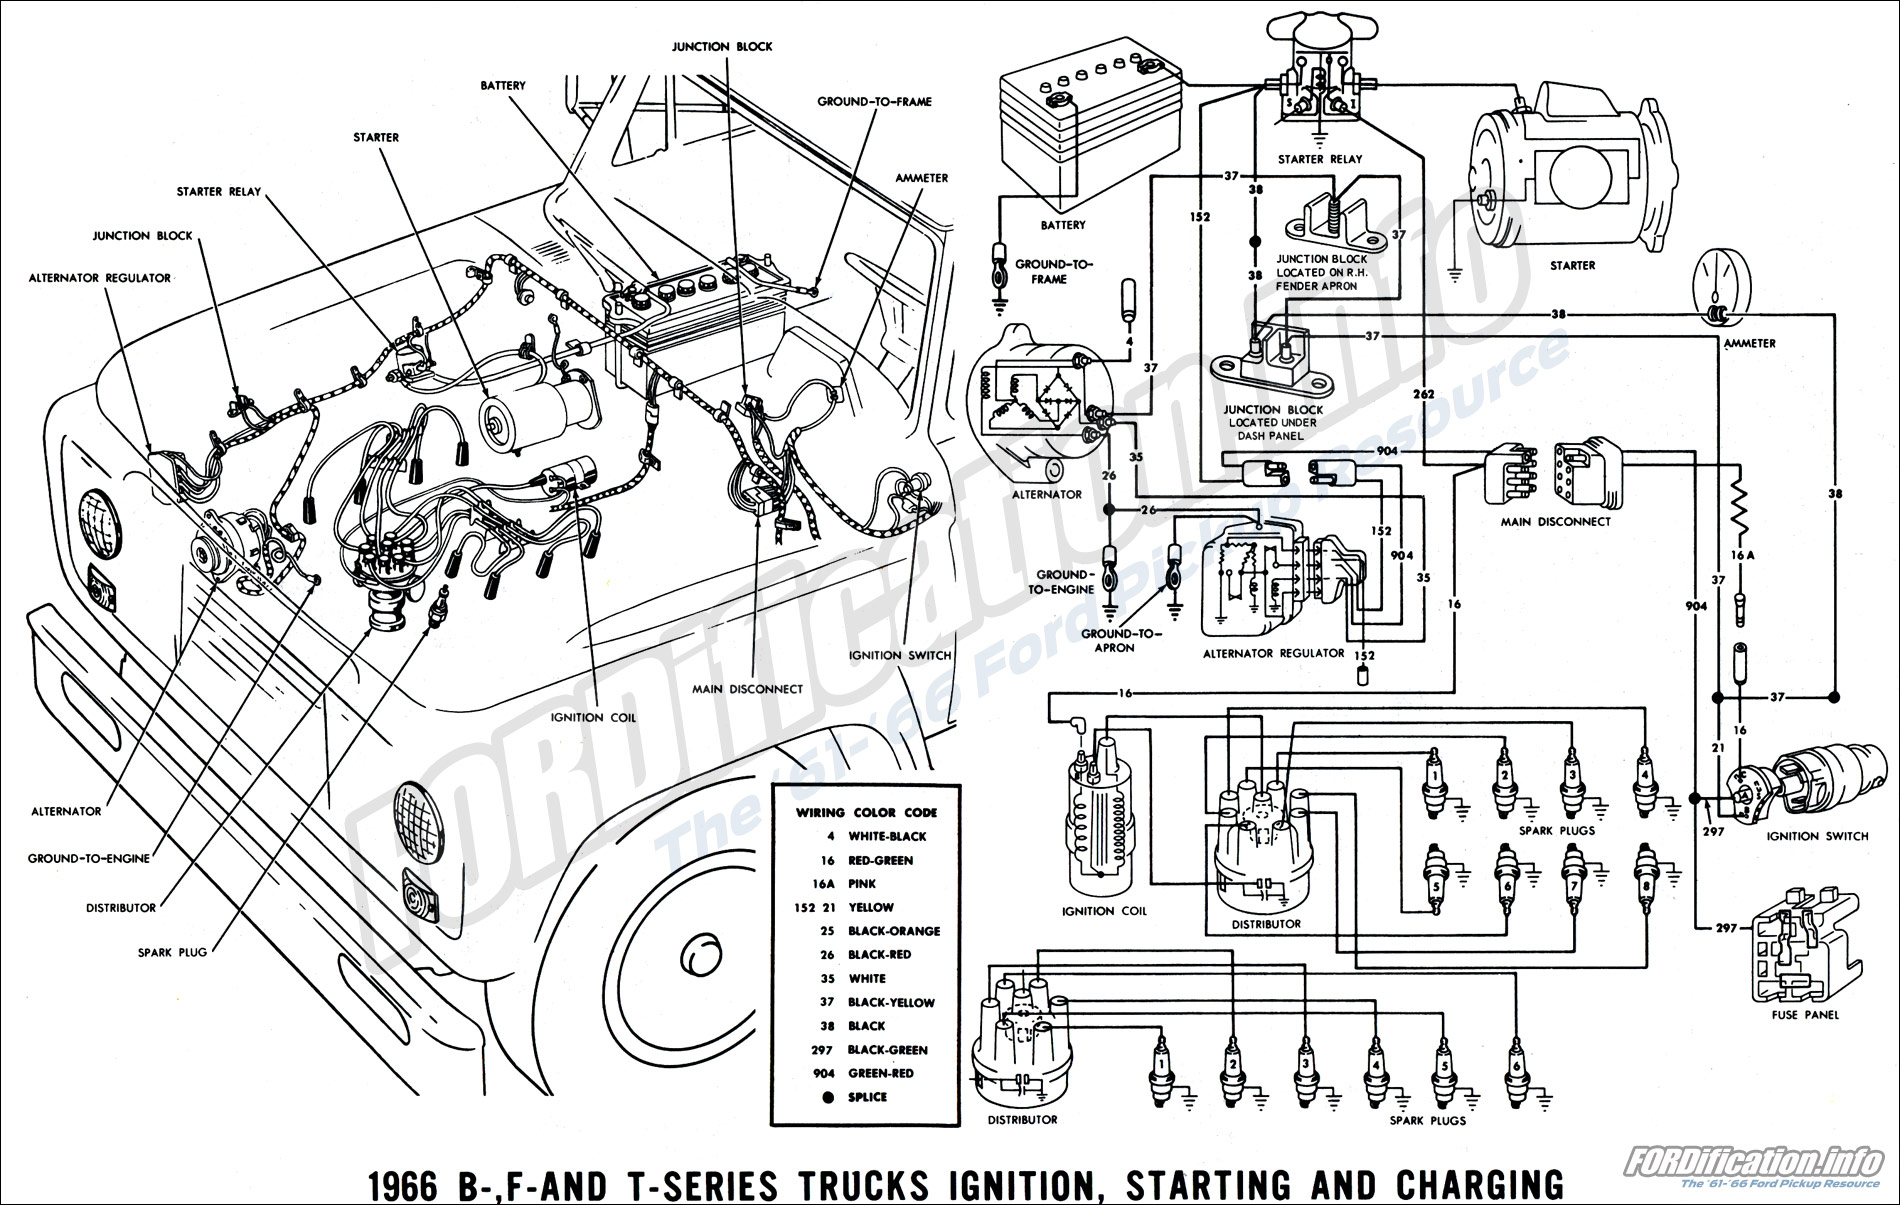 [DIAGRAM_5UK]  1966 Ford Truck Wiring Diagrams - FORDification.info - The '61-'66 Ford  Pickup Resource | 1966 Ford Truck Wiring Diagram |  | FORDification.info